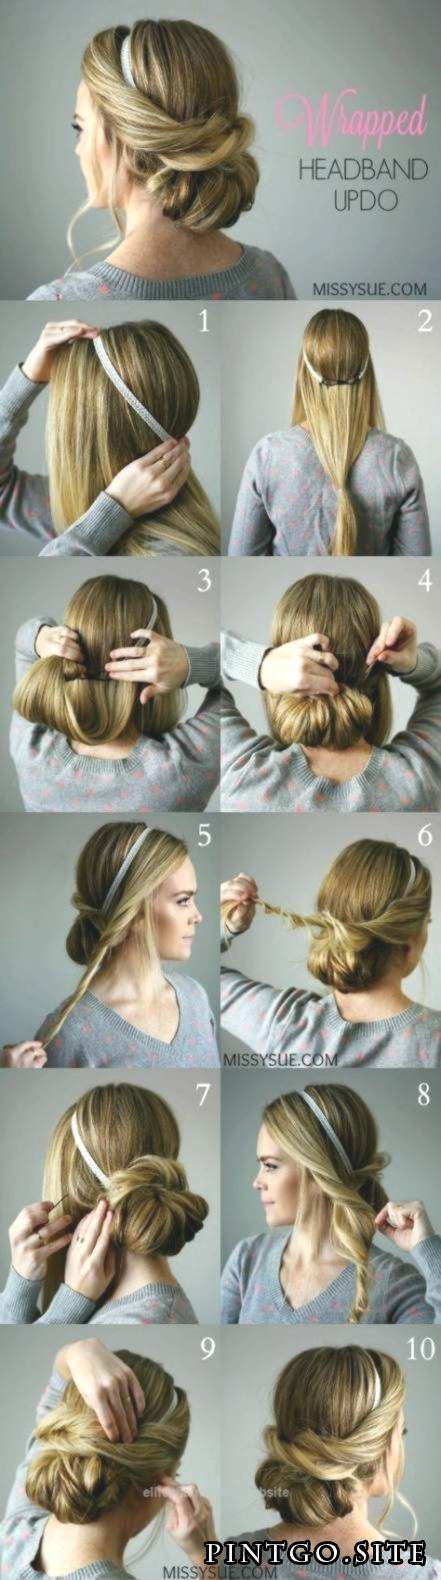 #Easy Hairstyles with headbands #For #Matte #Wedding Hairstyles #Ideen ..., #best ...